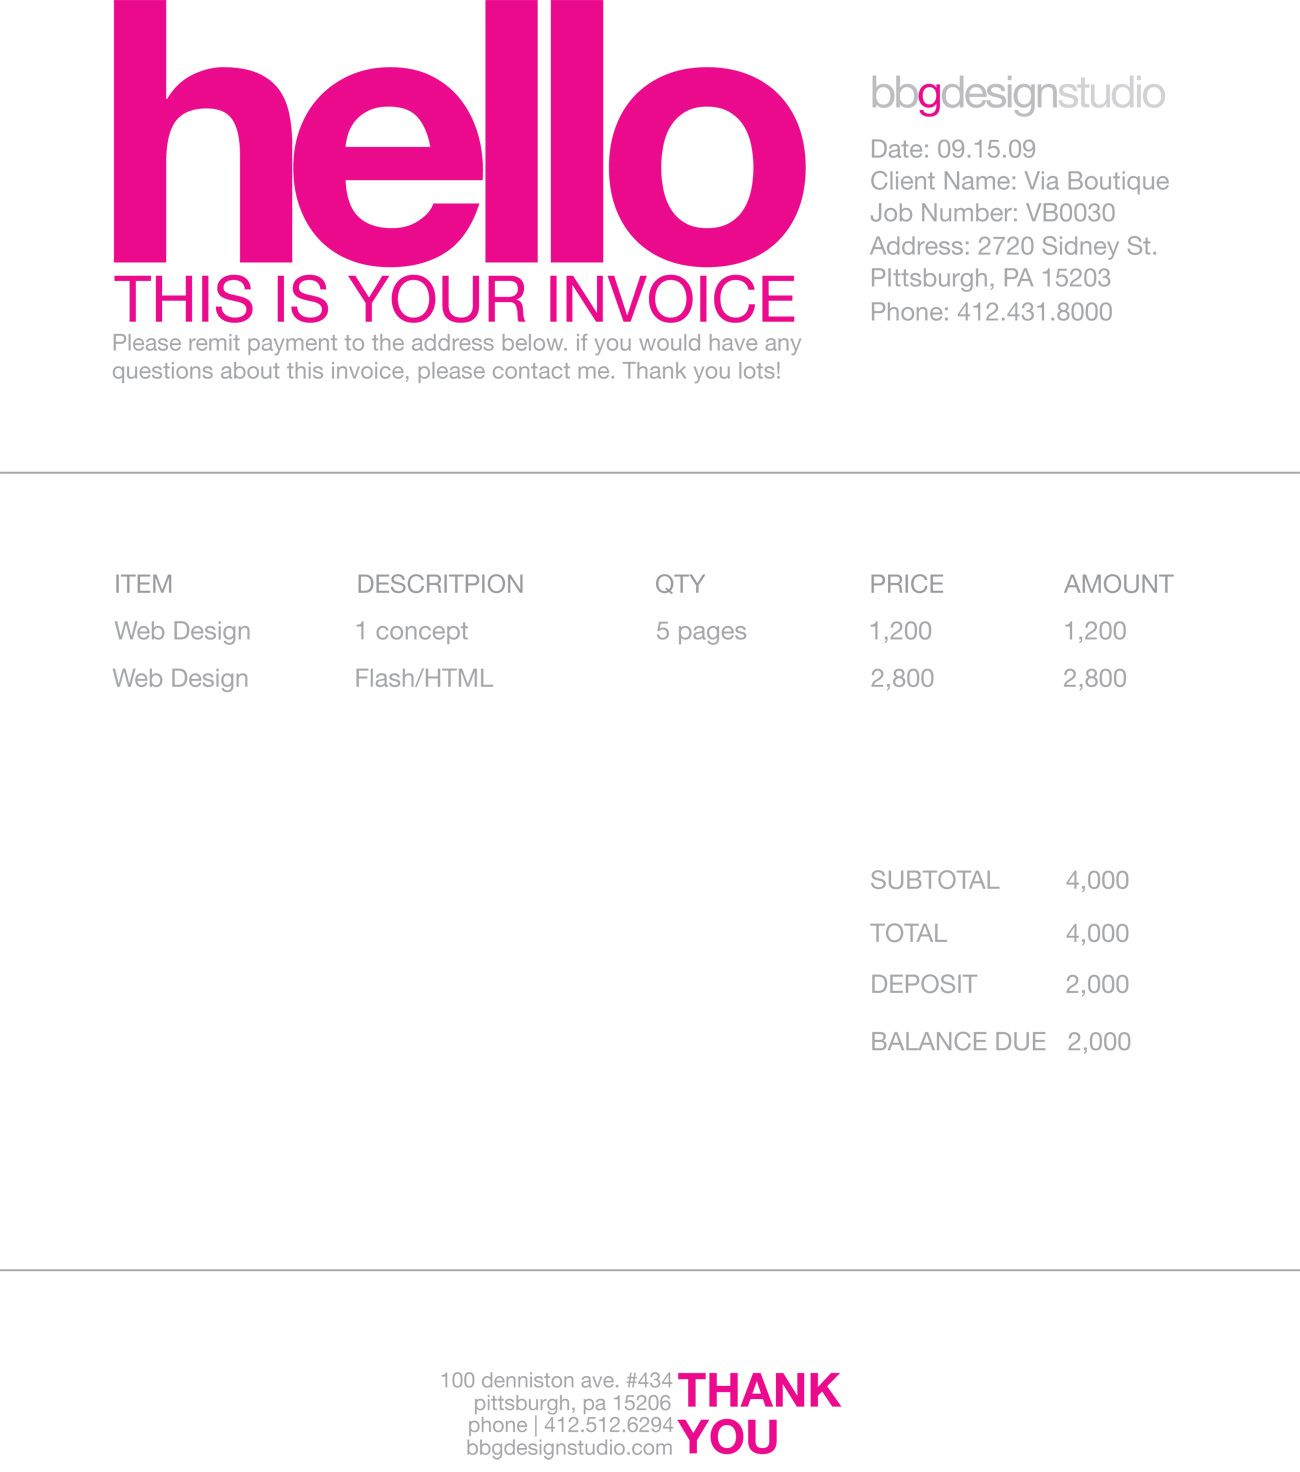 Hius  Prepossessing  Images About Invoice Design On Pinterest With Fair Party City Return Policy Without Receipt Besides Nm Gross Receipts Tax Furthermore Email Read Receipt With Agreeable Rent Receipt Format Also Email Receipt In Addition Read Receipts Gmail And Staples Return Policy No Receipt As Well As Receipt Template Pdf Additionally Receipt Templates From Pinterestcom With Hius  Fair  Images About Invoice Design On Pinterest With Agreeable Party City Return Policy Without Receipt Besides Nm Gross Receipts Tax Furthermore Email Read Receipt And Prepossessing Rent Receipt Format Also Email Receipt In Addition Read Receipts Gmail From Pinterestcom